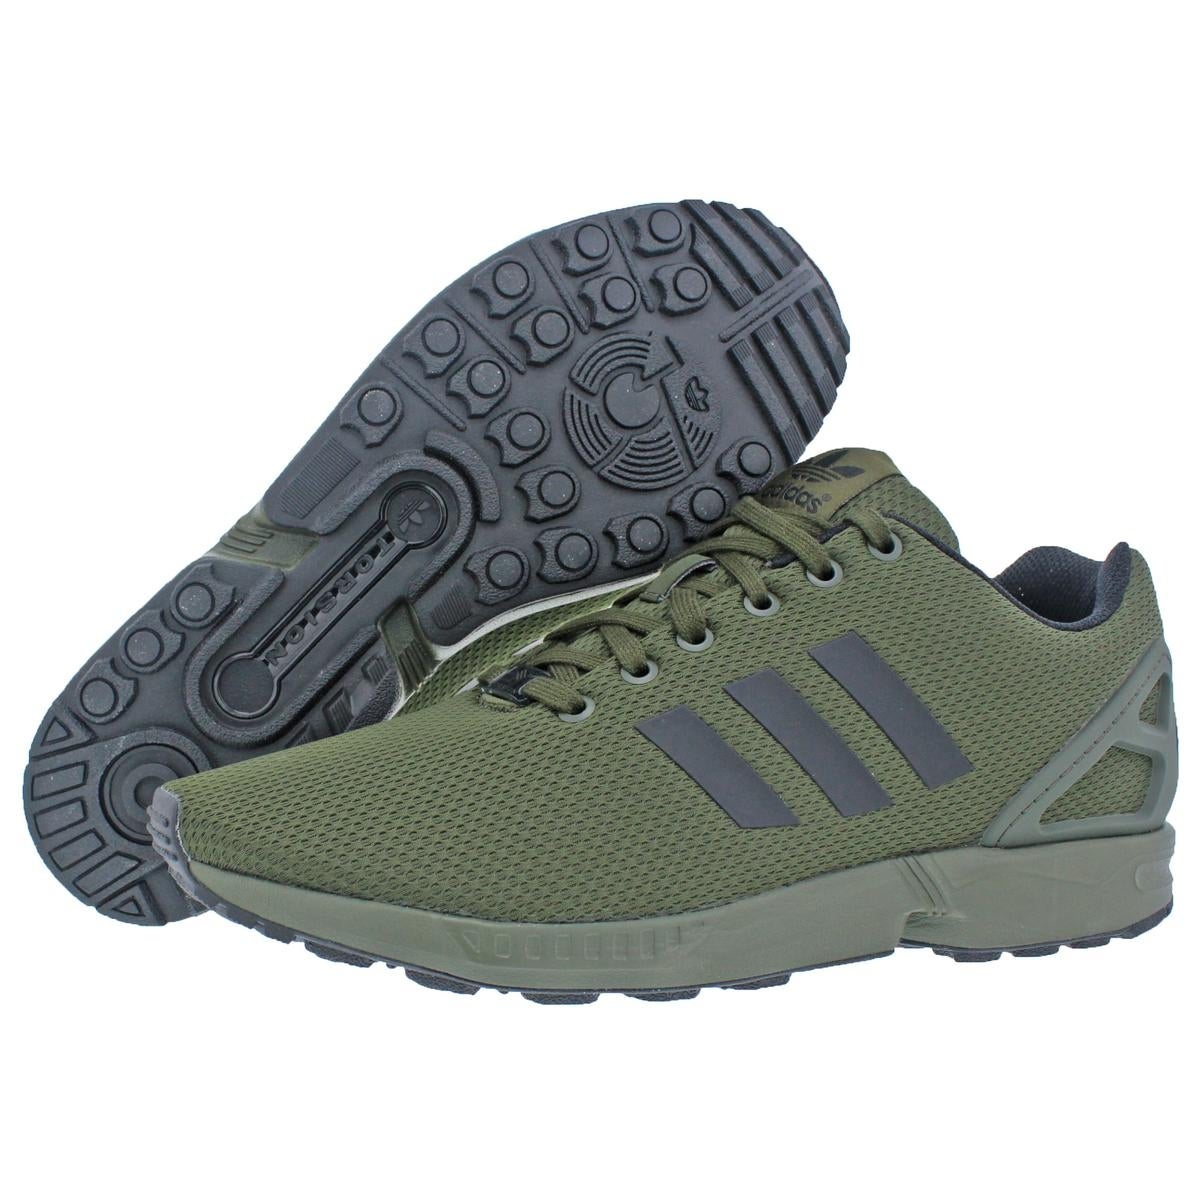 85ffc89b11508 Shop Adidas Mens ZX Flux Running Shoes Torsion Casual - 11.5 medium (d) -  Free Shipping Today - Overstock - 22338926